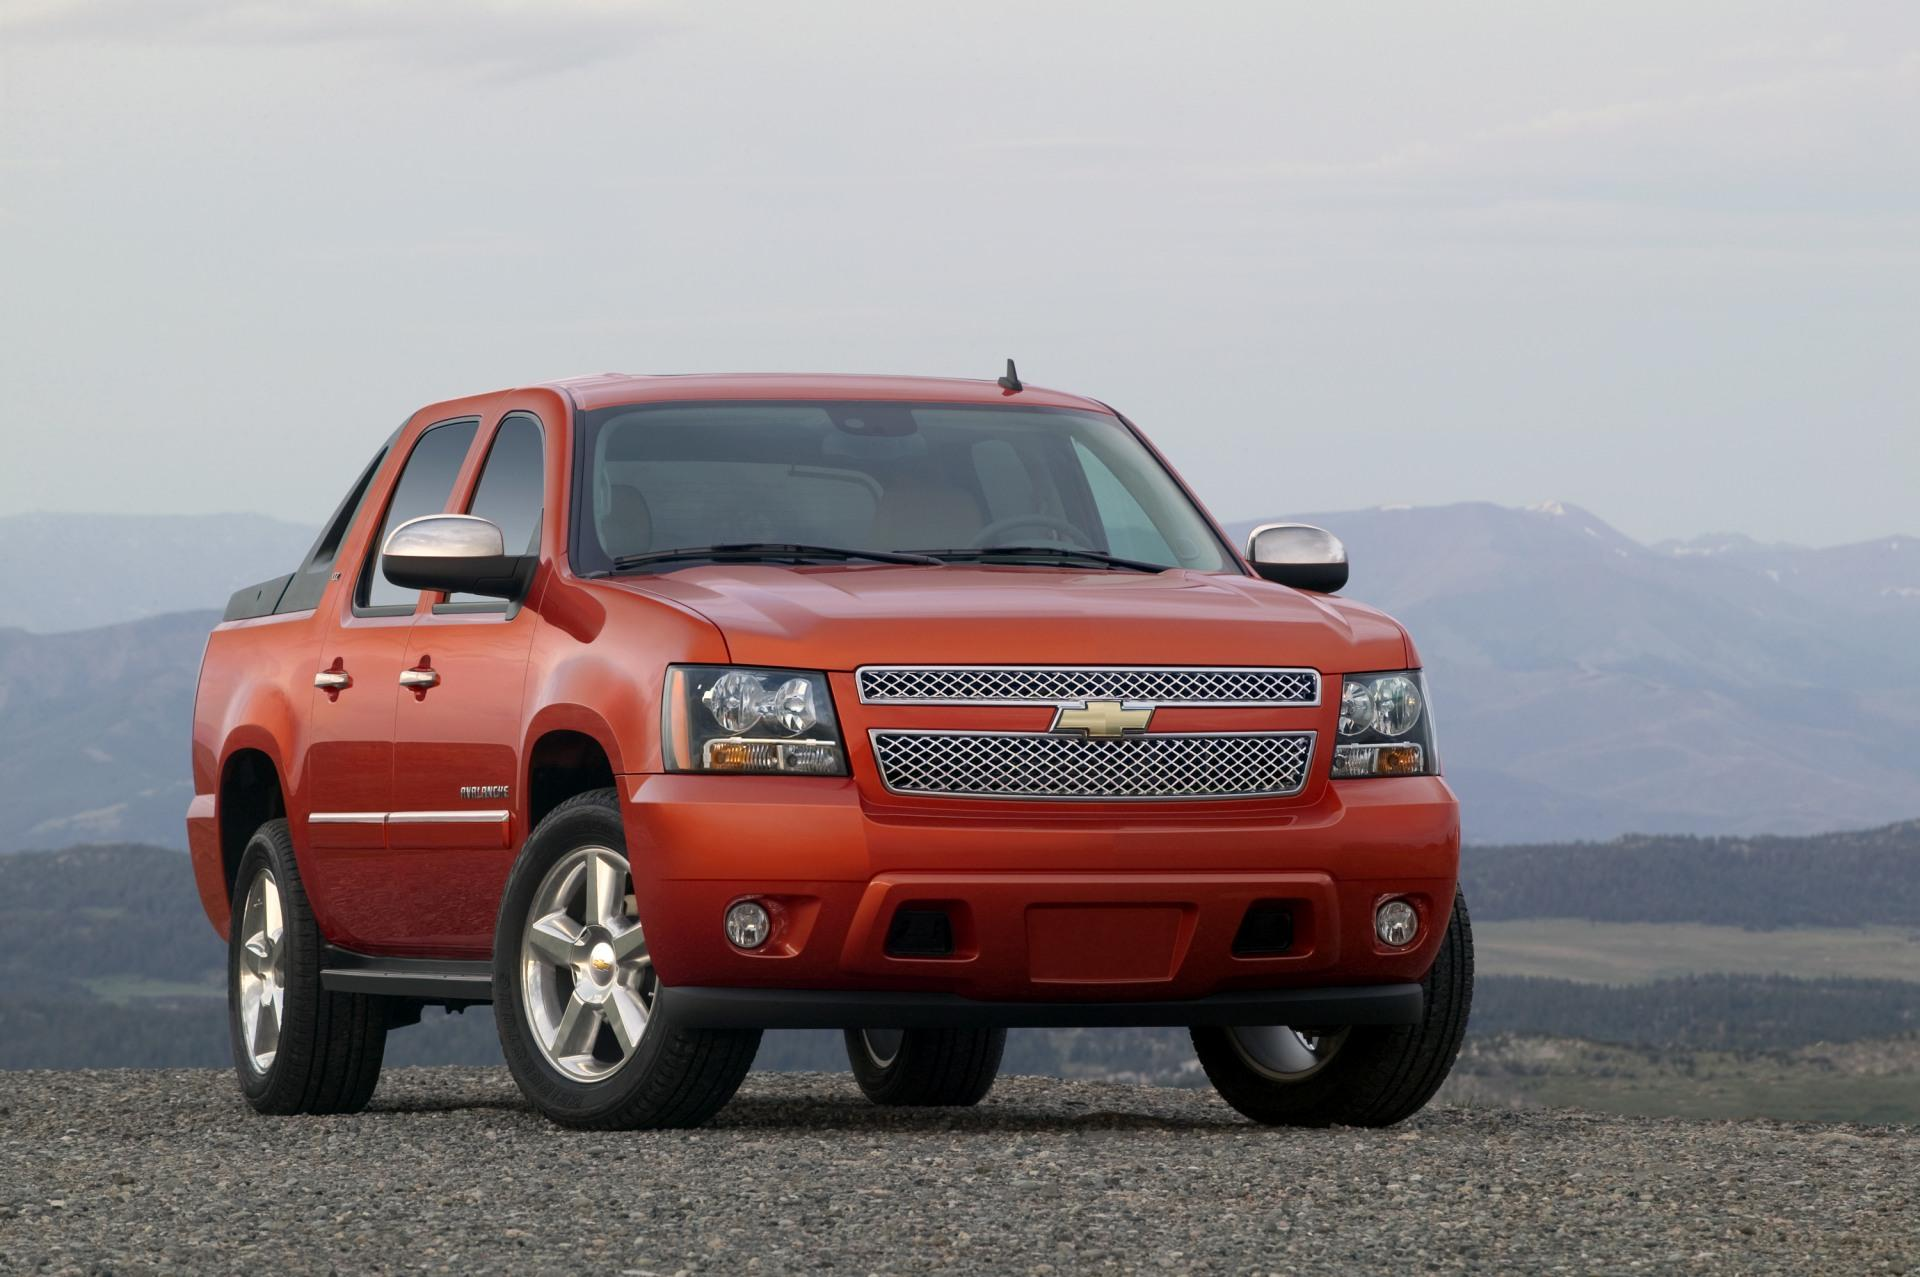 2011 Chevrolet Avalanche News and Information - conceptcarz.com